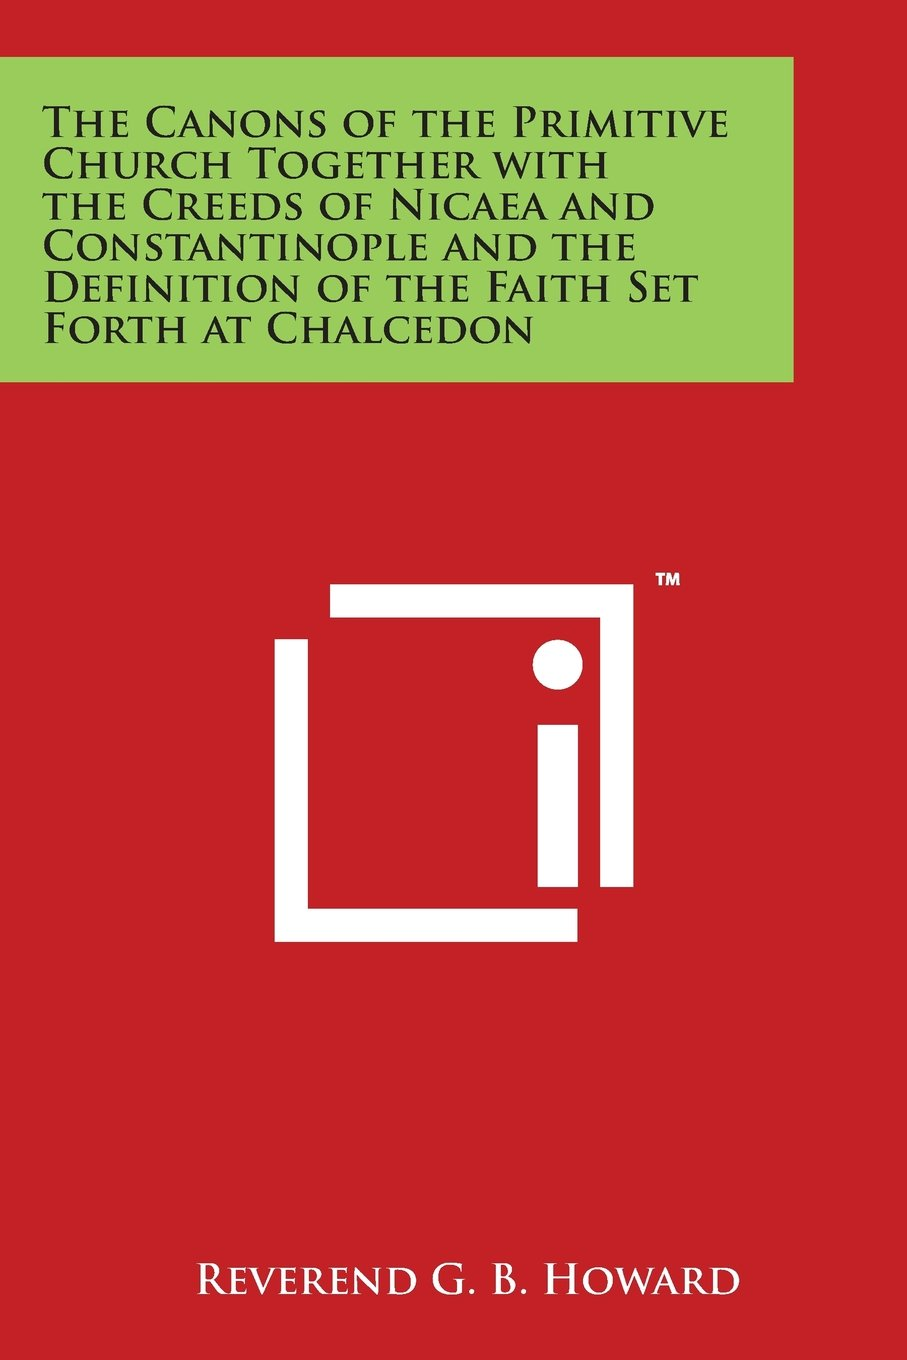 Download The Canons of the Primitive Church Together with the Creeds of Nicaea and Constantinople and the Definition of the Faith Set Forth at Chalcedon Text fb2 ebook